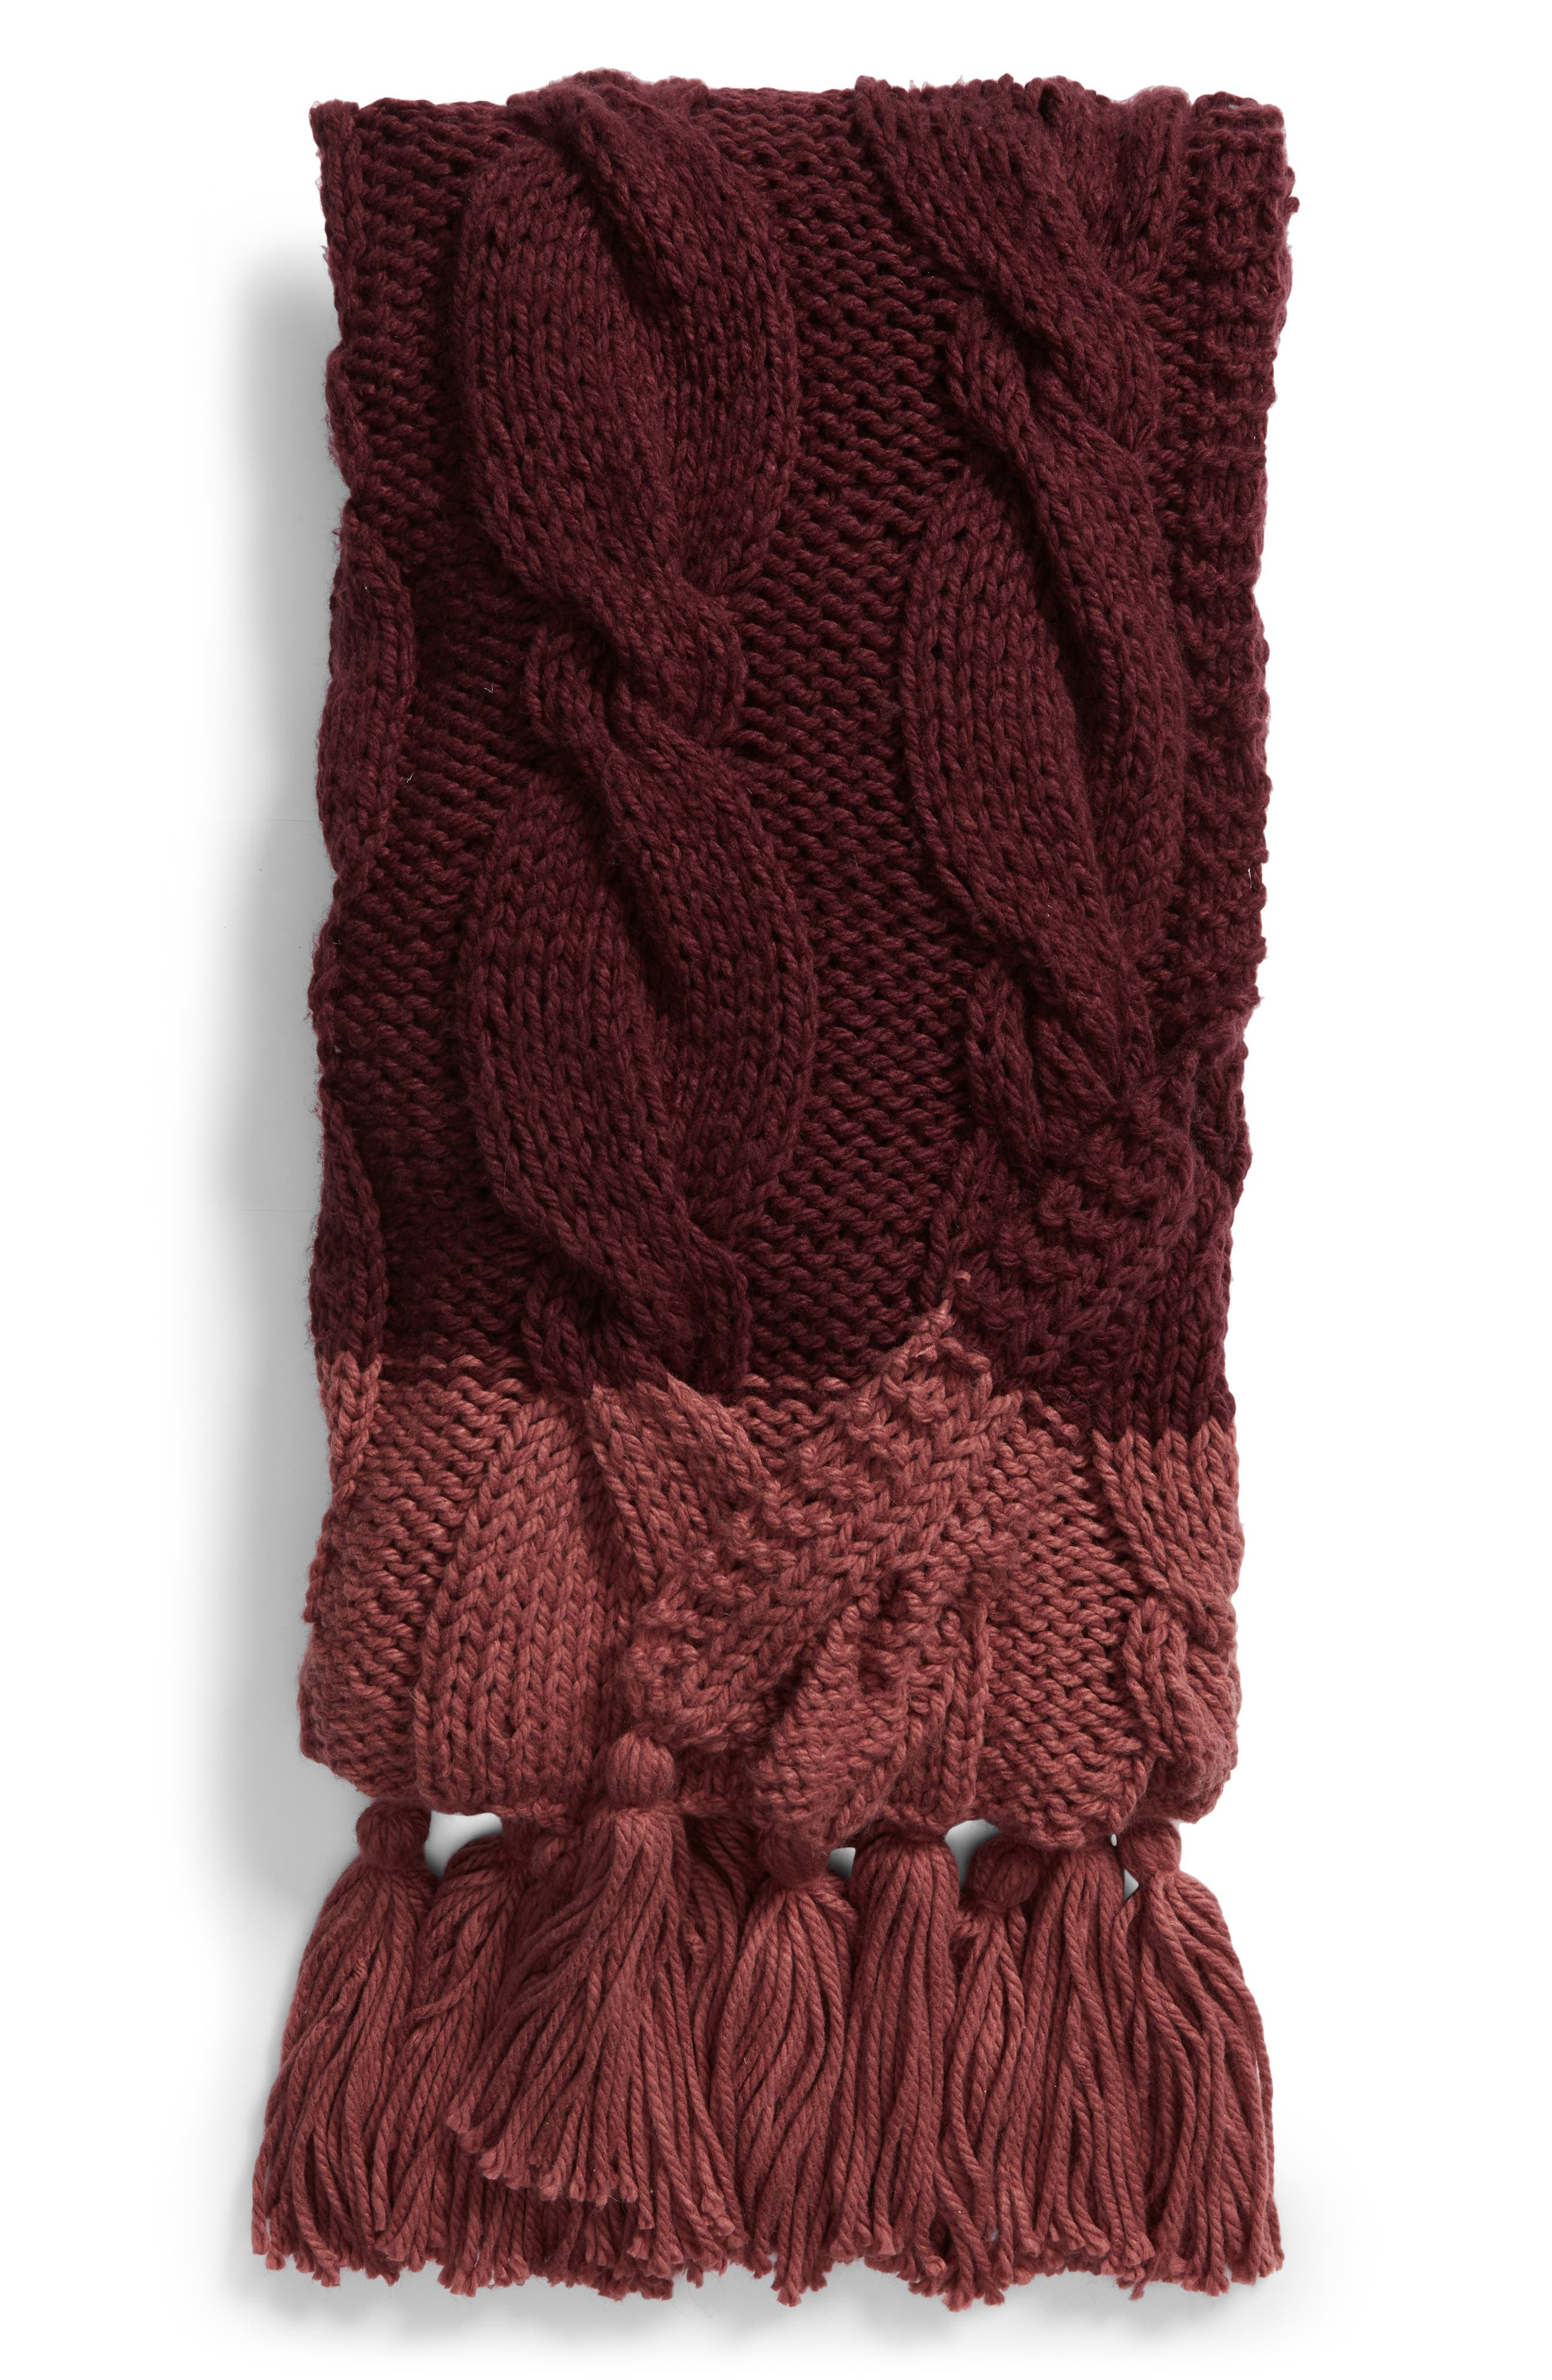 Cable Knit Tassel Throw Blanket,                             Main thumbnail 1, color,                             BURGUNDY STEM